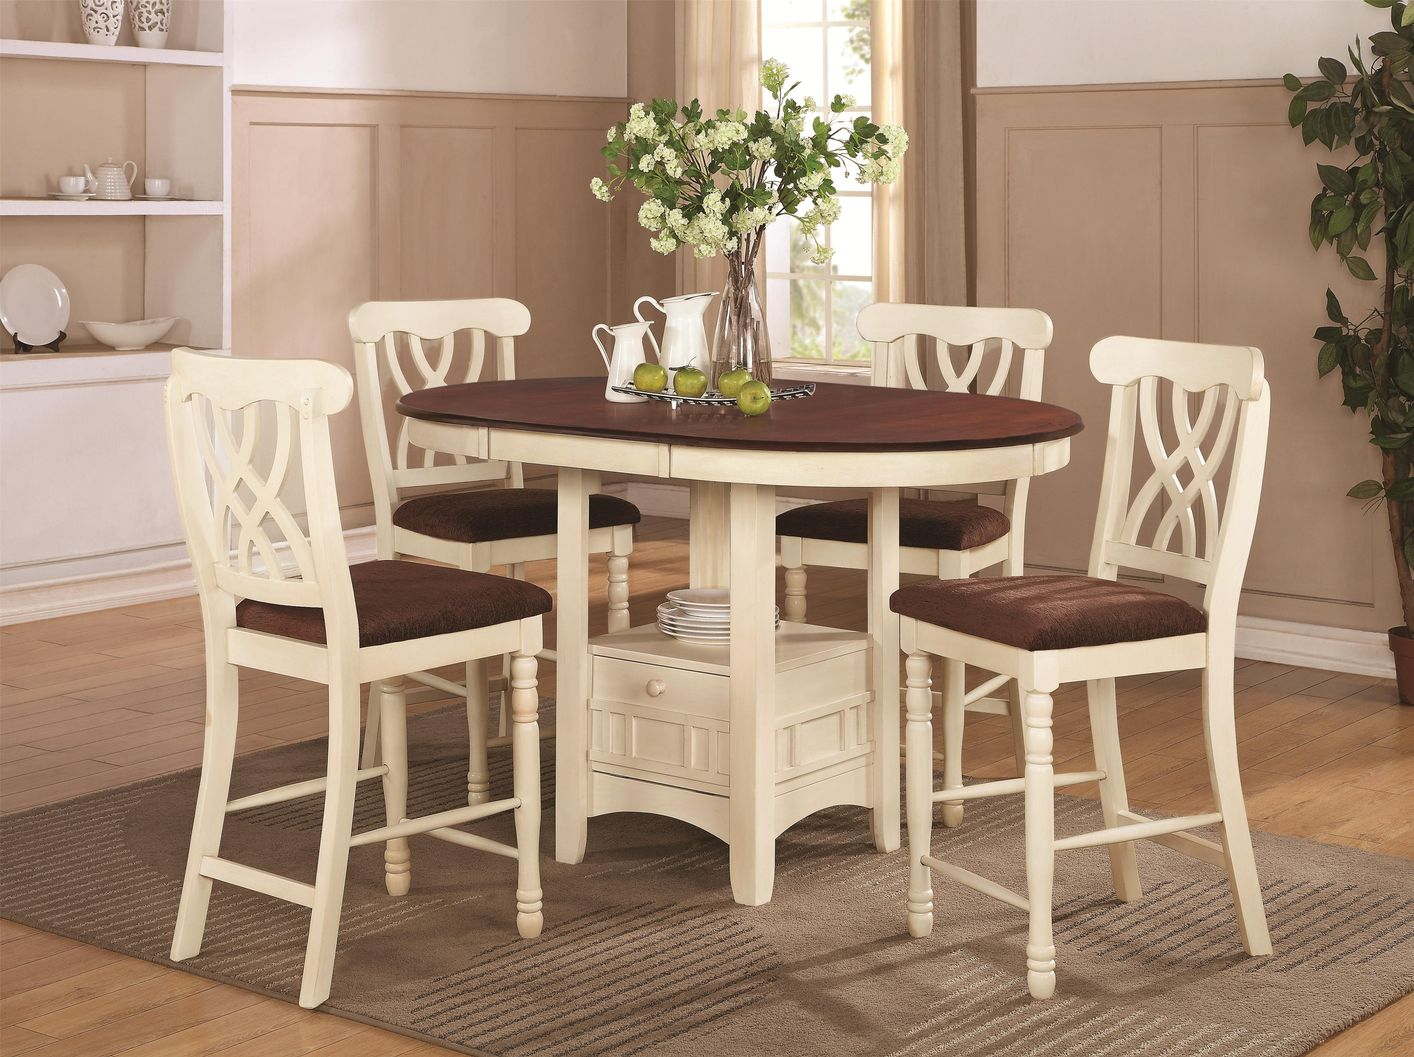 Coaster Addison 102238 102239 White Wood Pub Table Set In  : addison white and cherry wood pub table set 9 from www.stealasofa.com size 1414 x 1057 jpeg 252kB